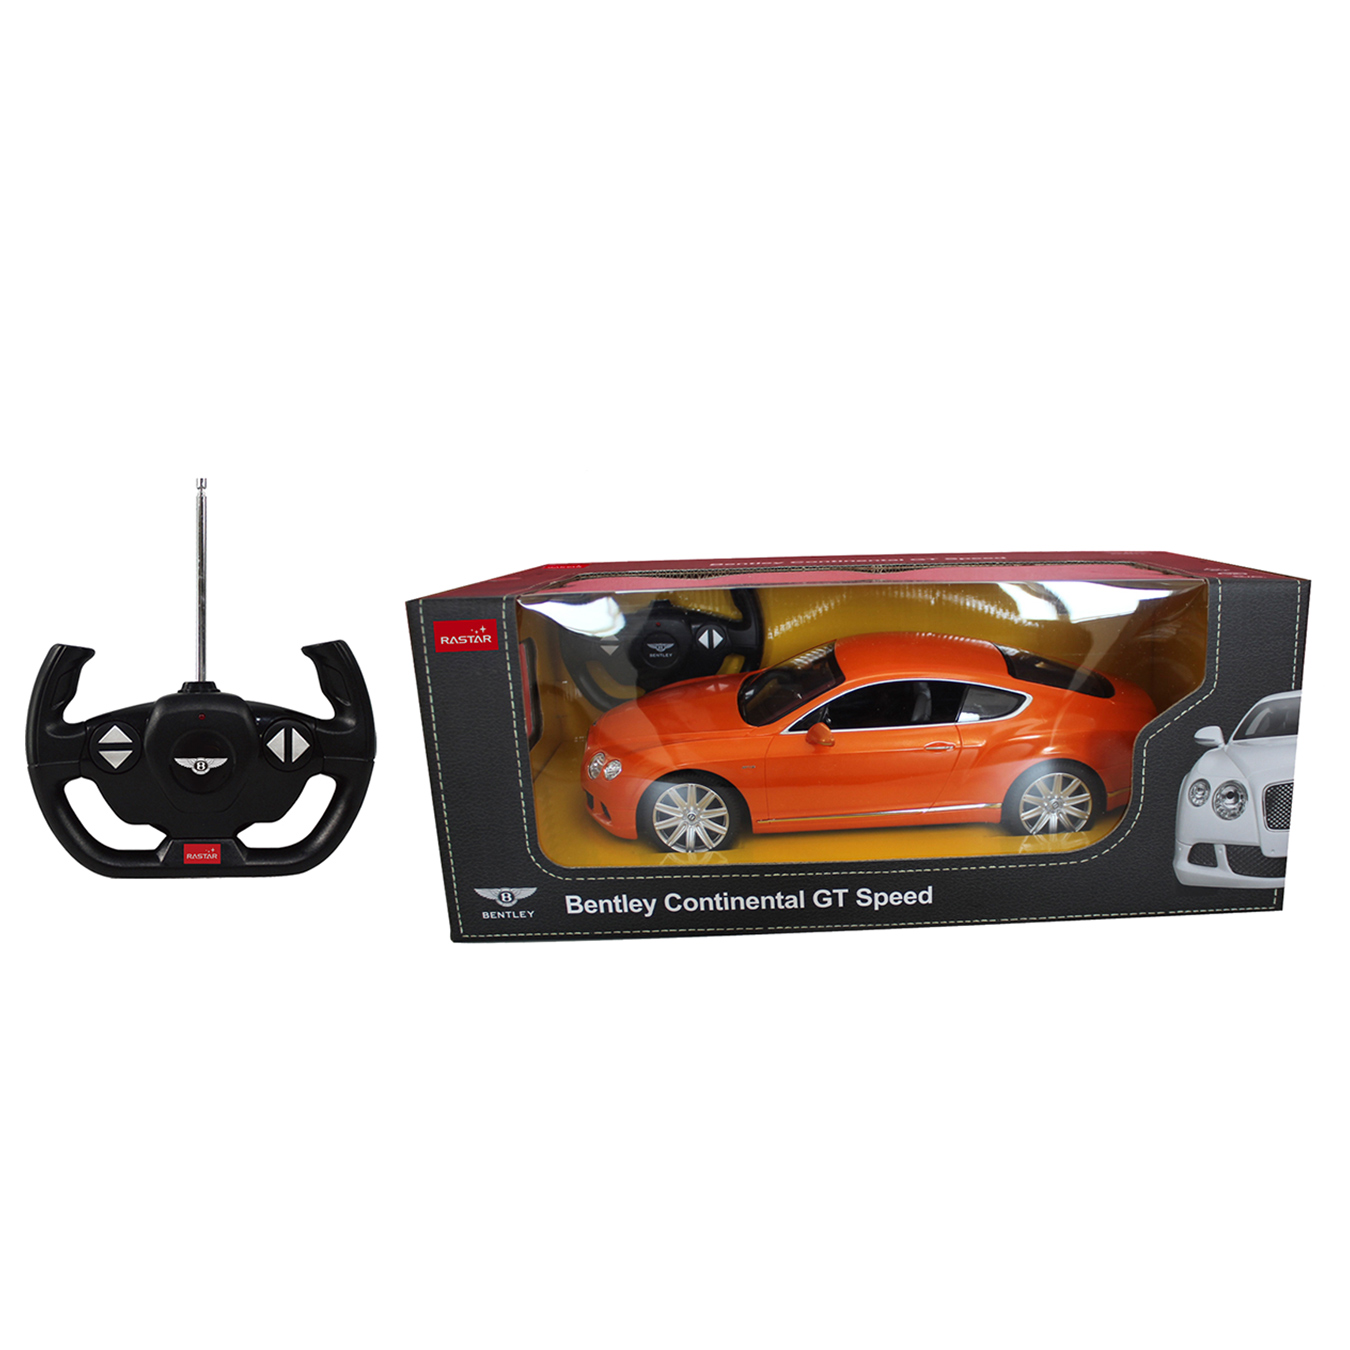 masina cu telecomanda rastar bentley continental gt speed 1:14